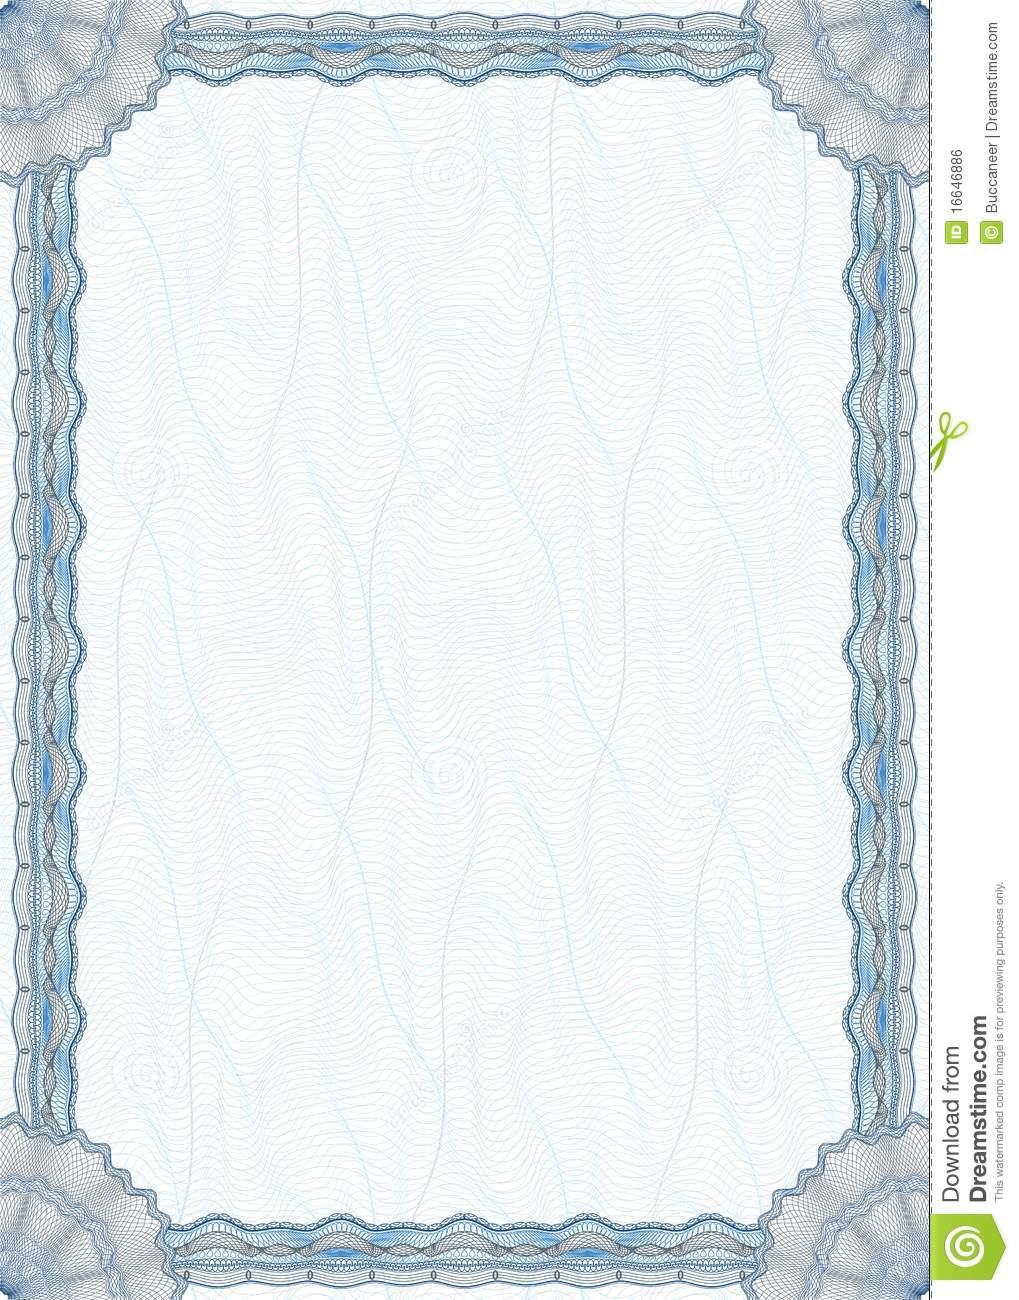 Blank Guilloche Border For Diploma Or Certificate Royalty